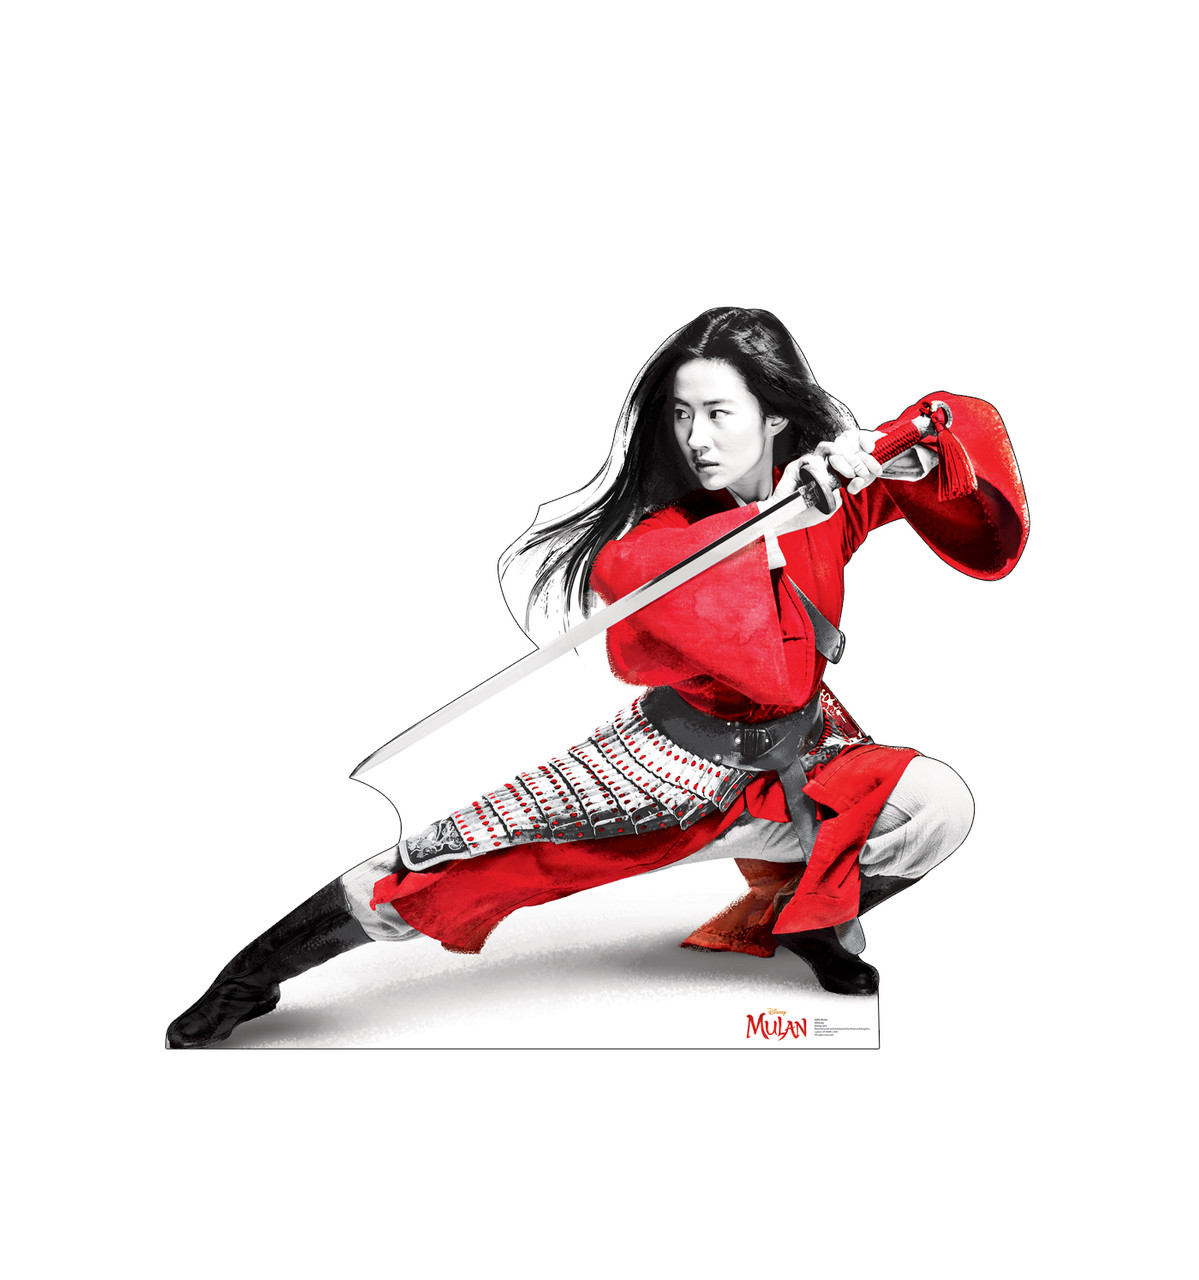 Life-size cardboard standee of Mulan from Disney's live action